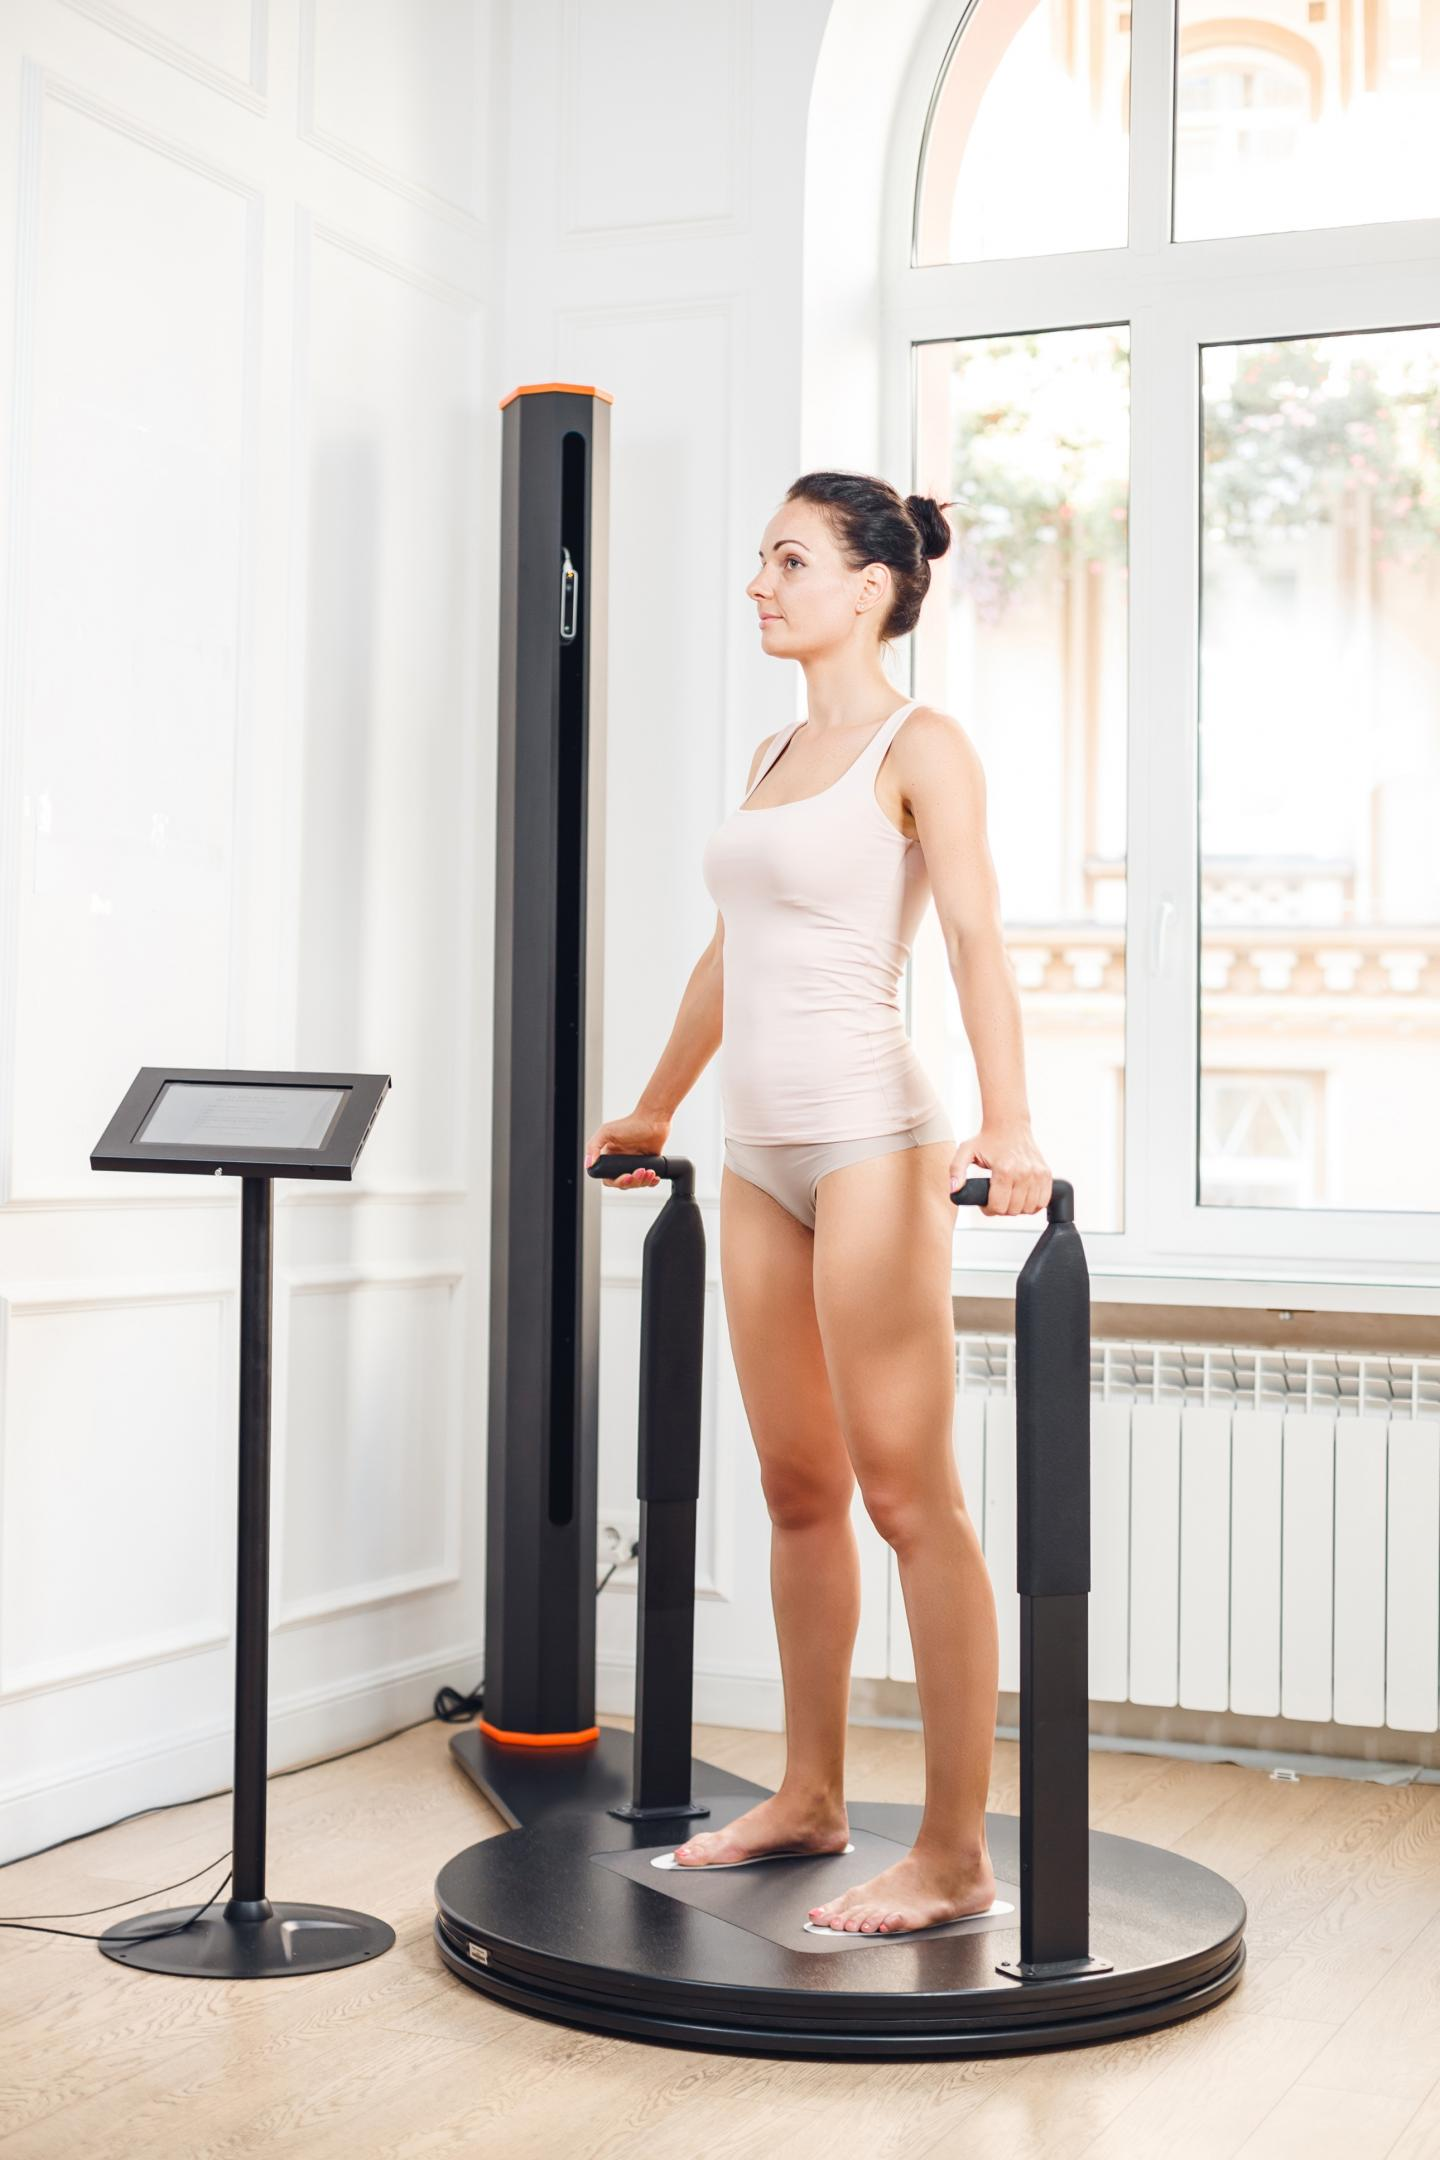 3D Body Scanners and Athletes